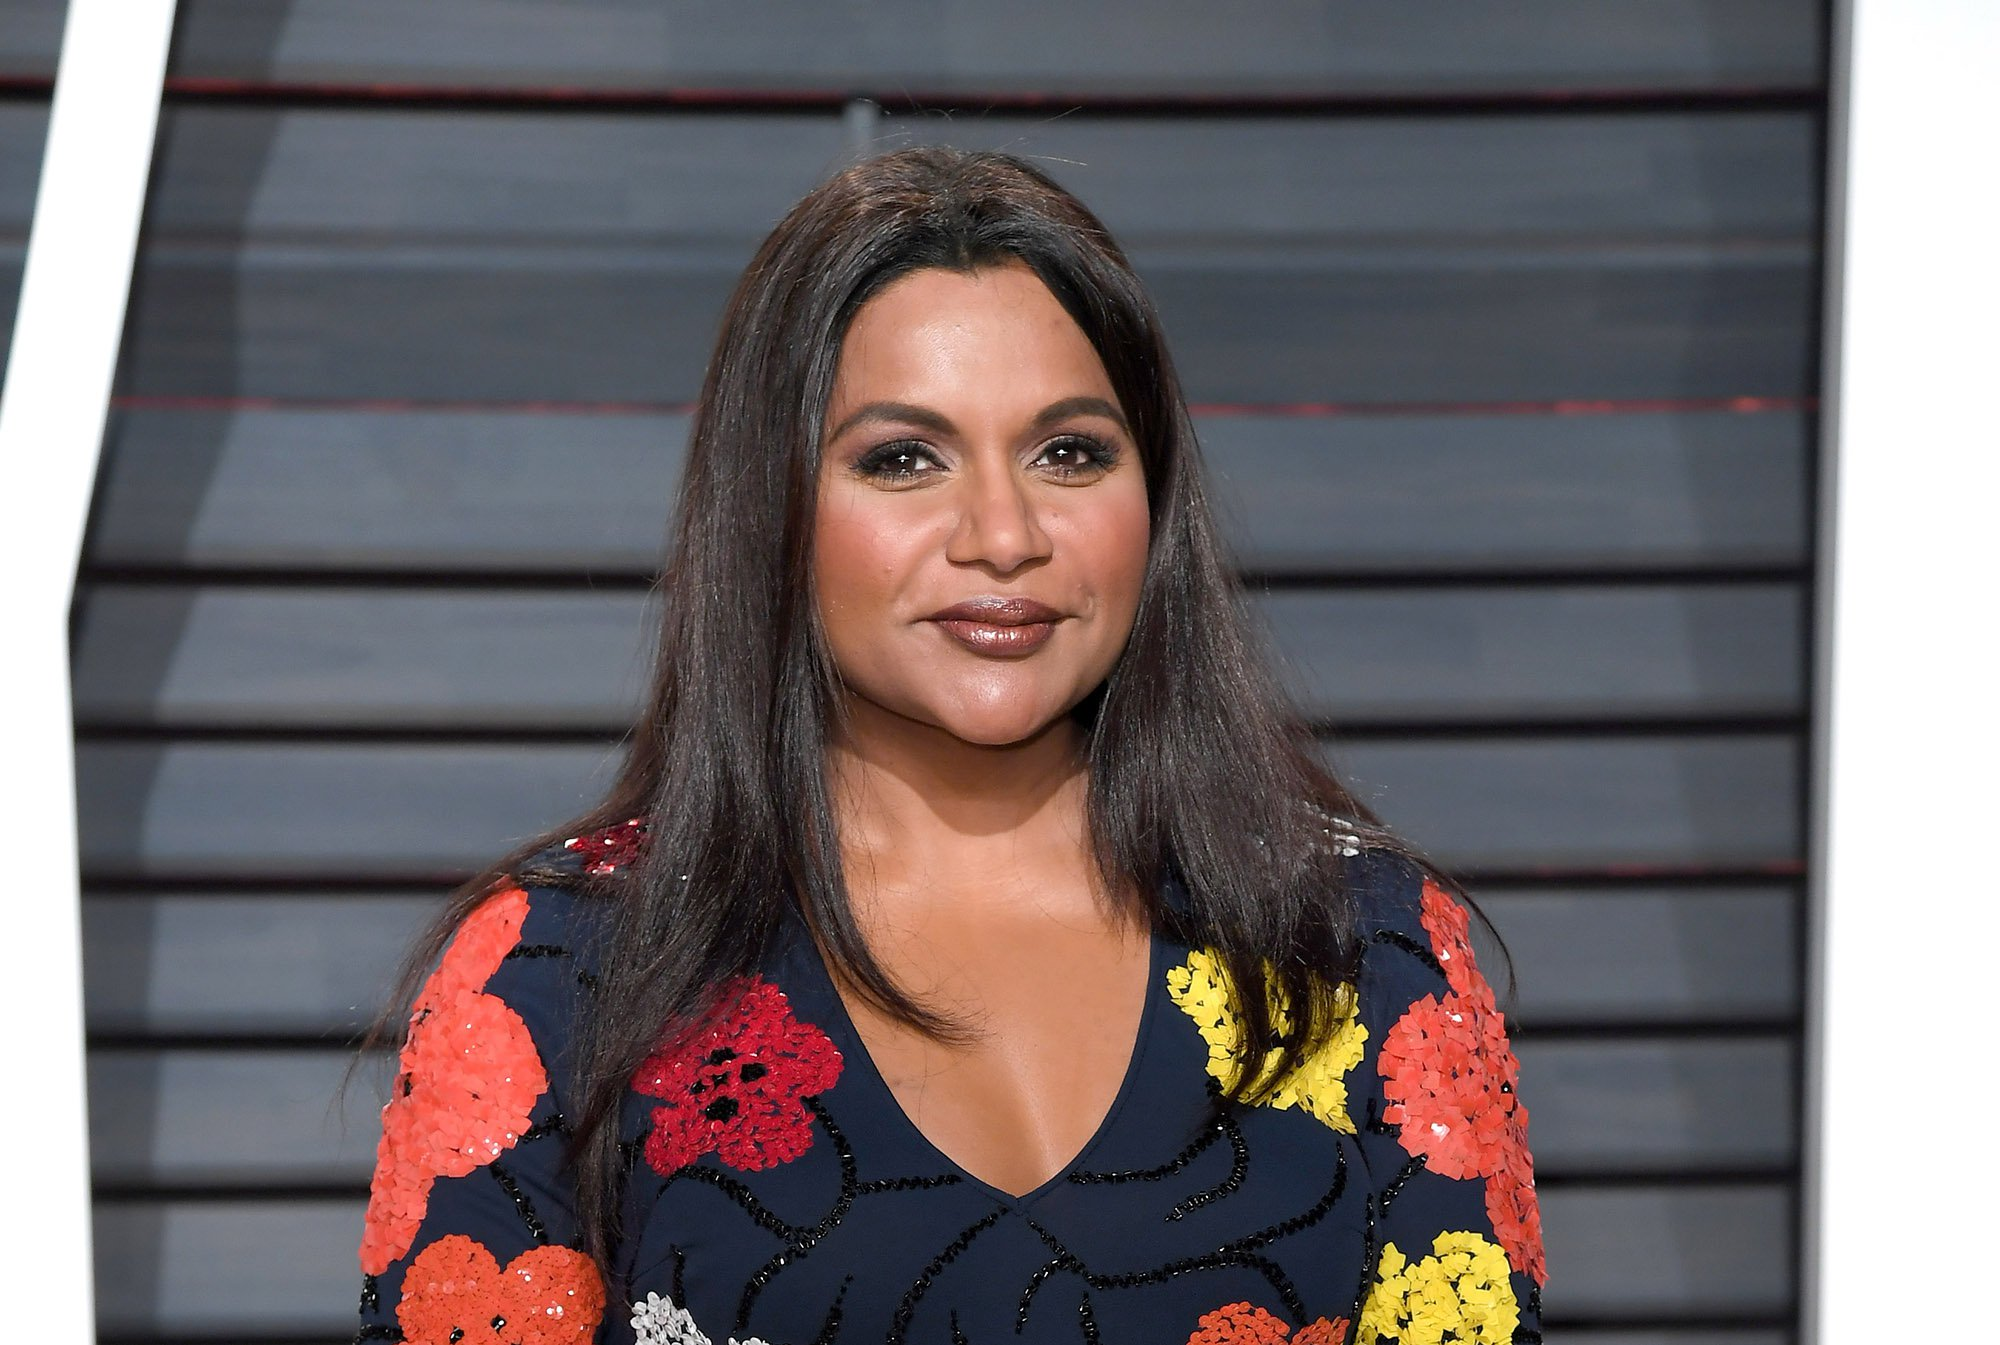 Cory Booker Just Asked Mindy Kaling to Dinner on Twitter. She Said Yes.